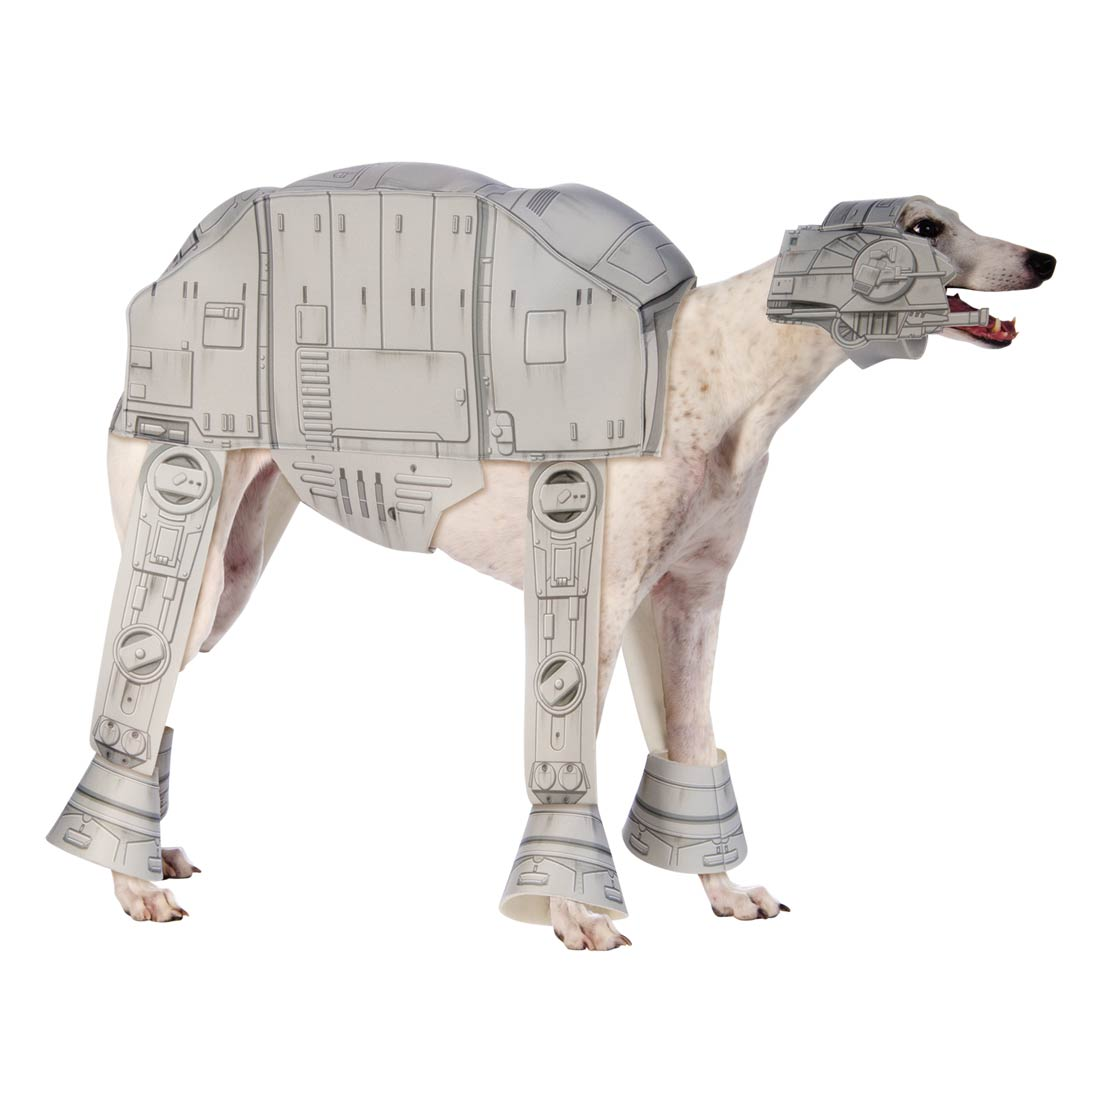 Stars Wars Dog Costume | Daytripfinder blog